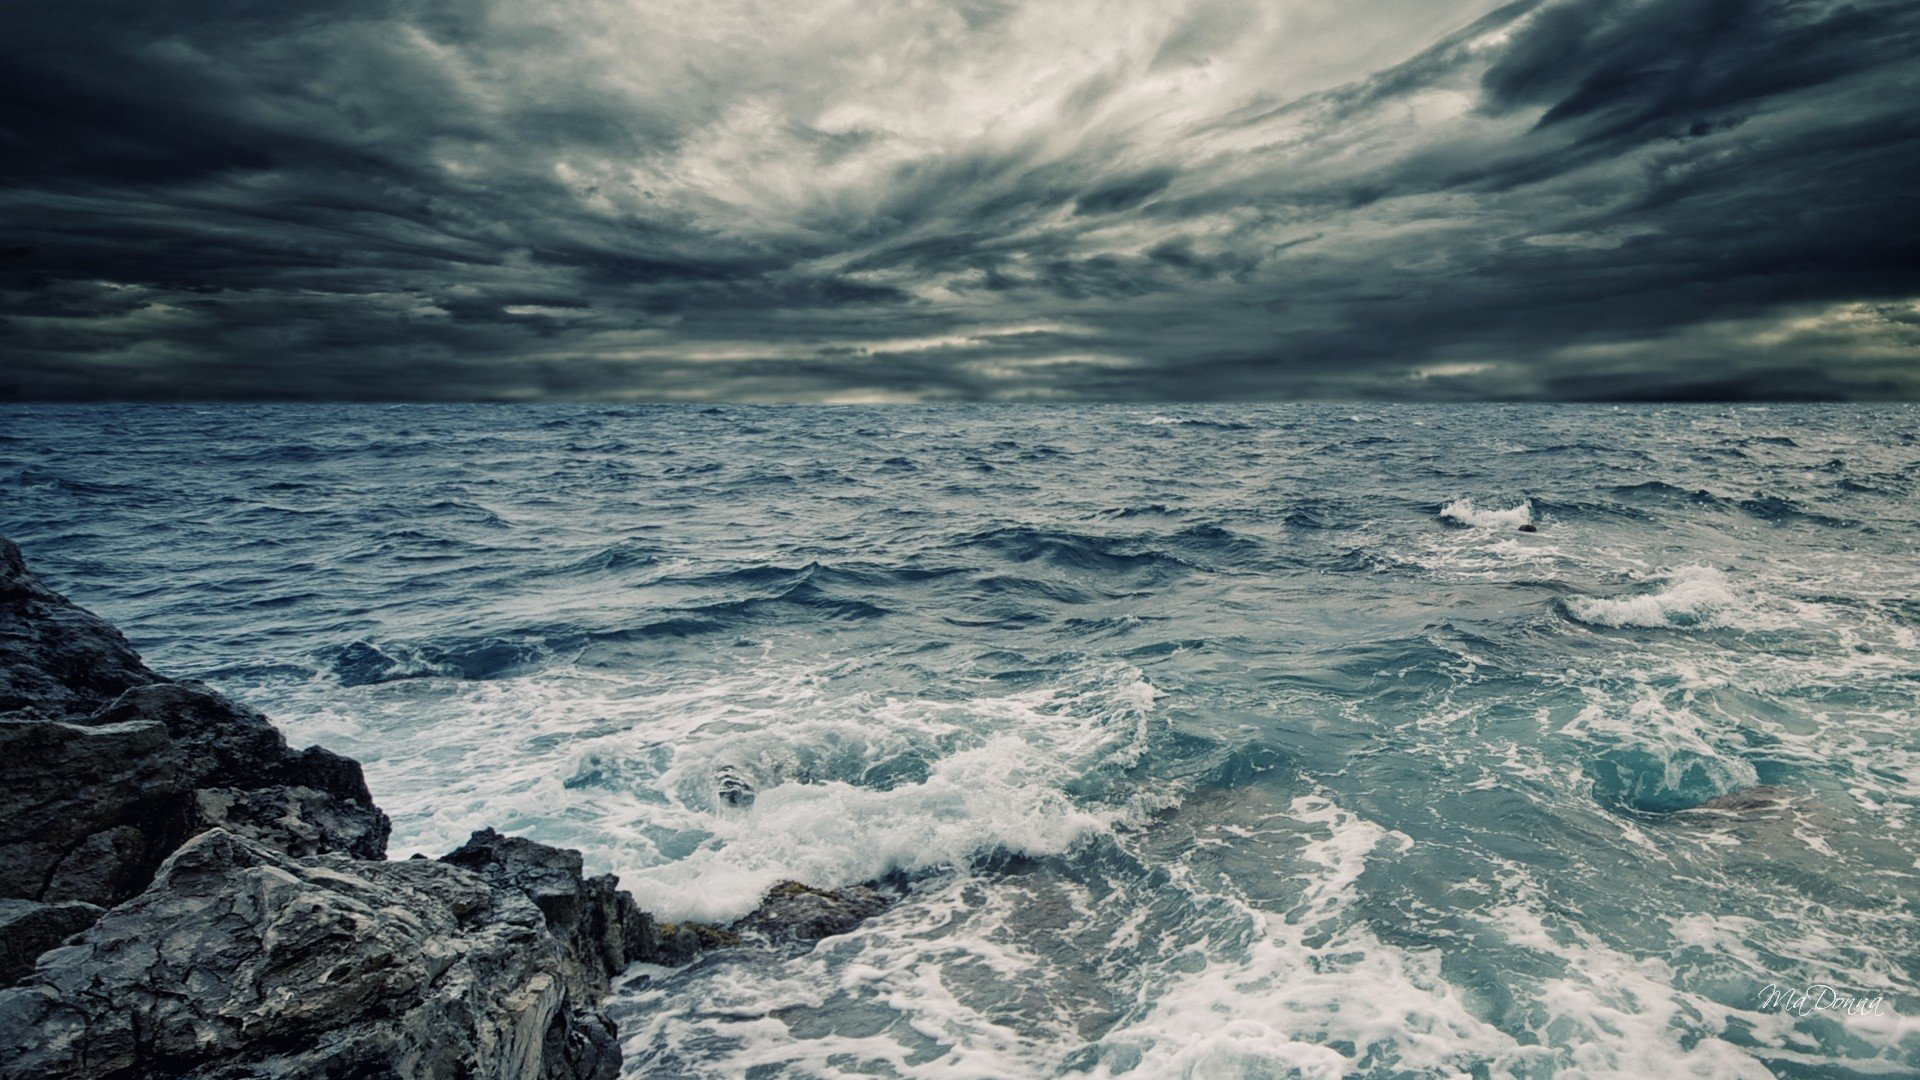 Stormy Sea Sky wallpaper - ForWallpaper.com